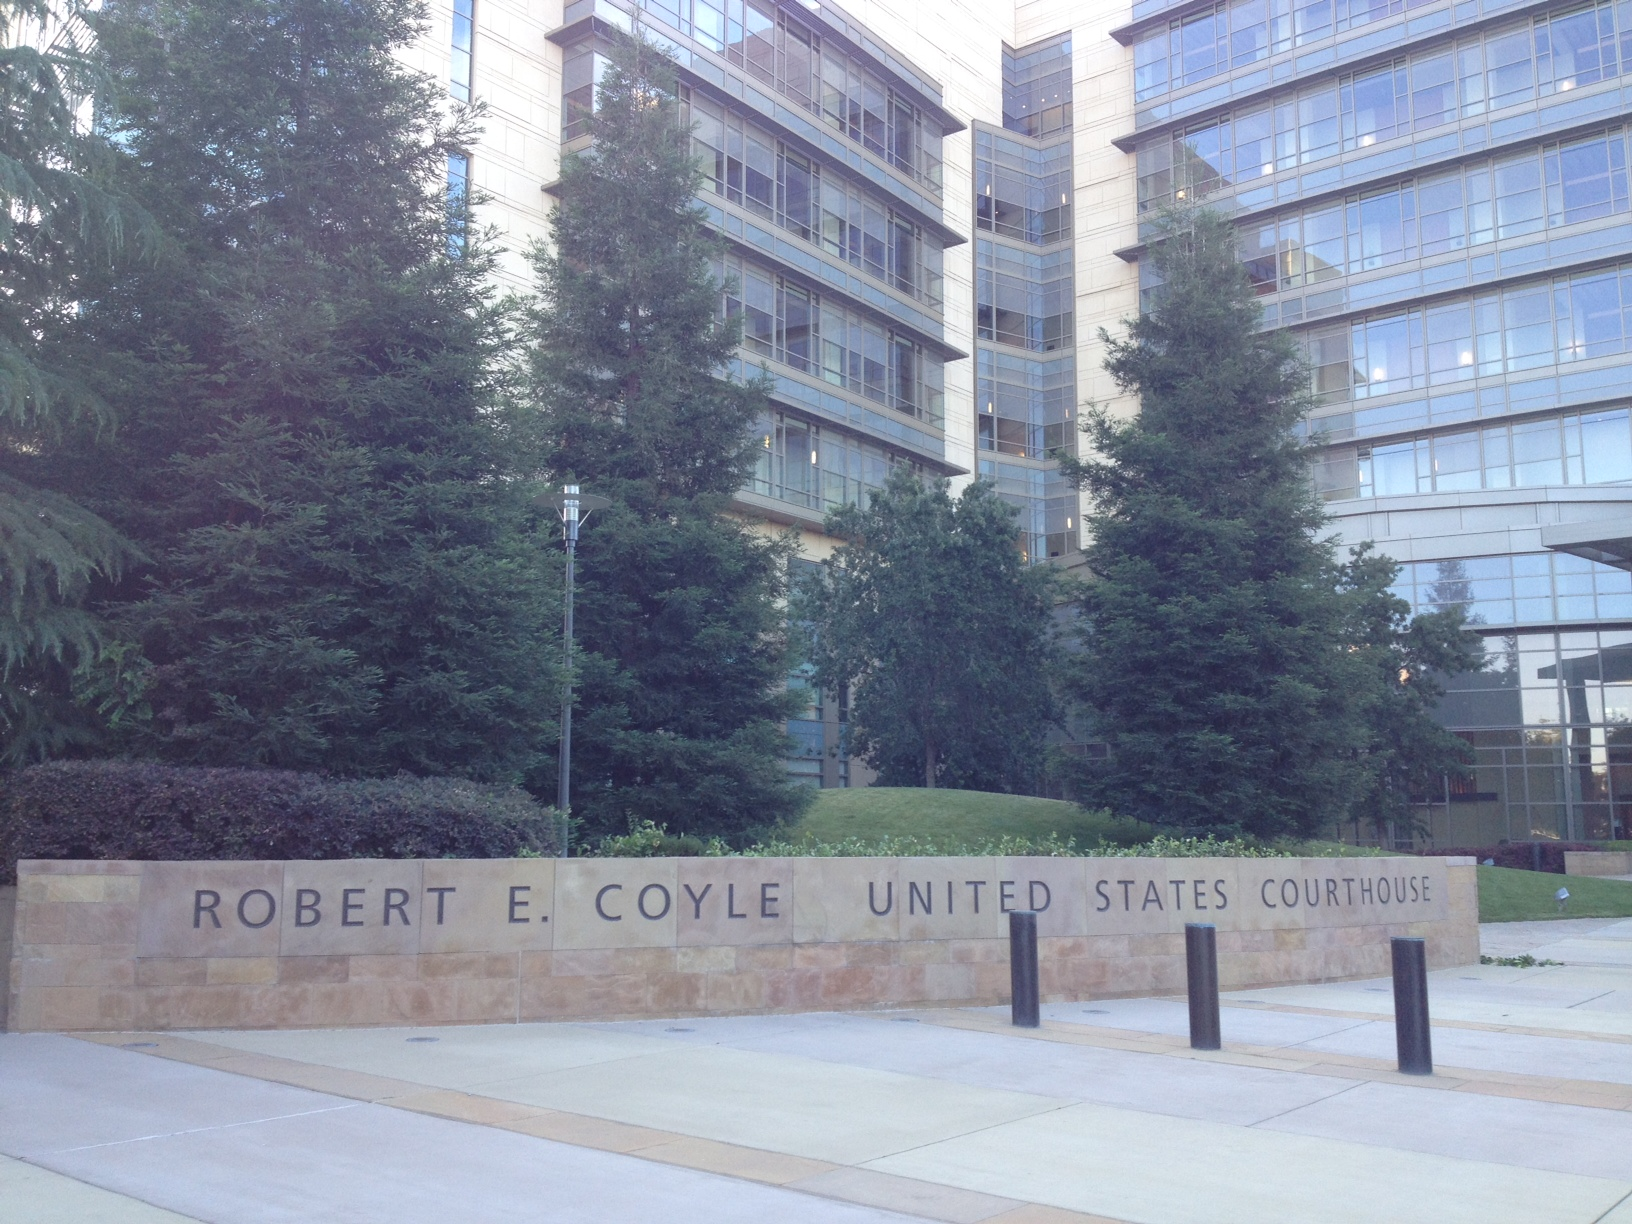 The Robert E. Coyle Federal Courthouse in Fresno is the site of a significant portion of the nation's laser strike cases.